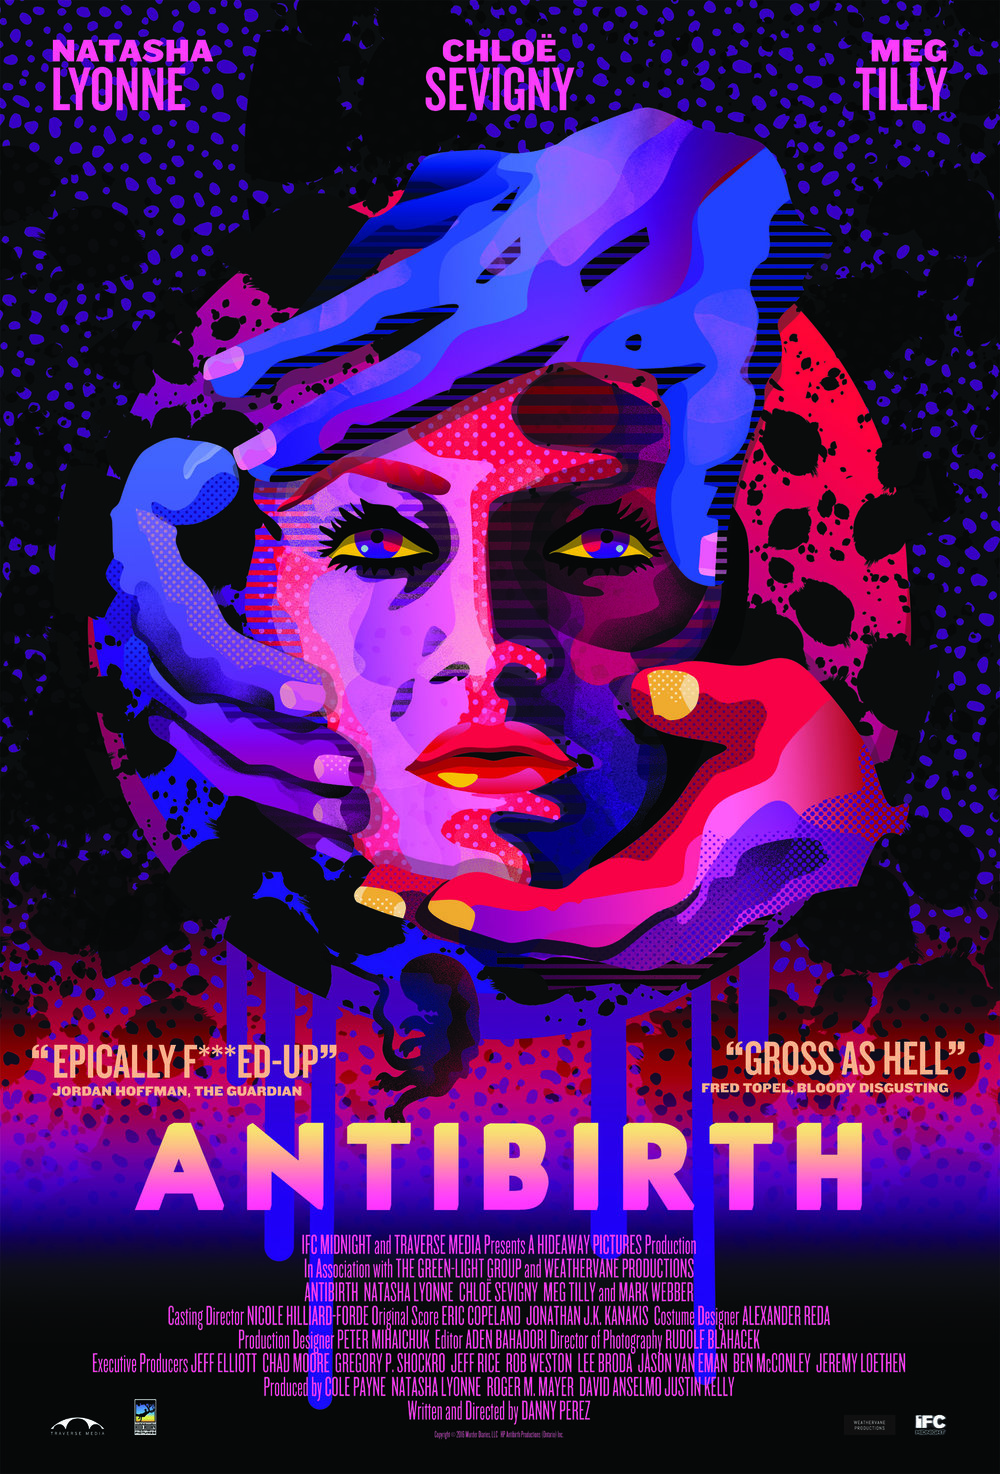 antibirth poster.jpg